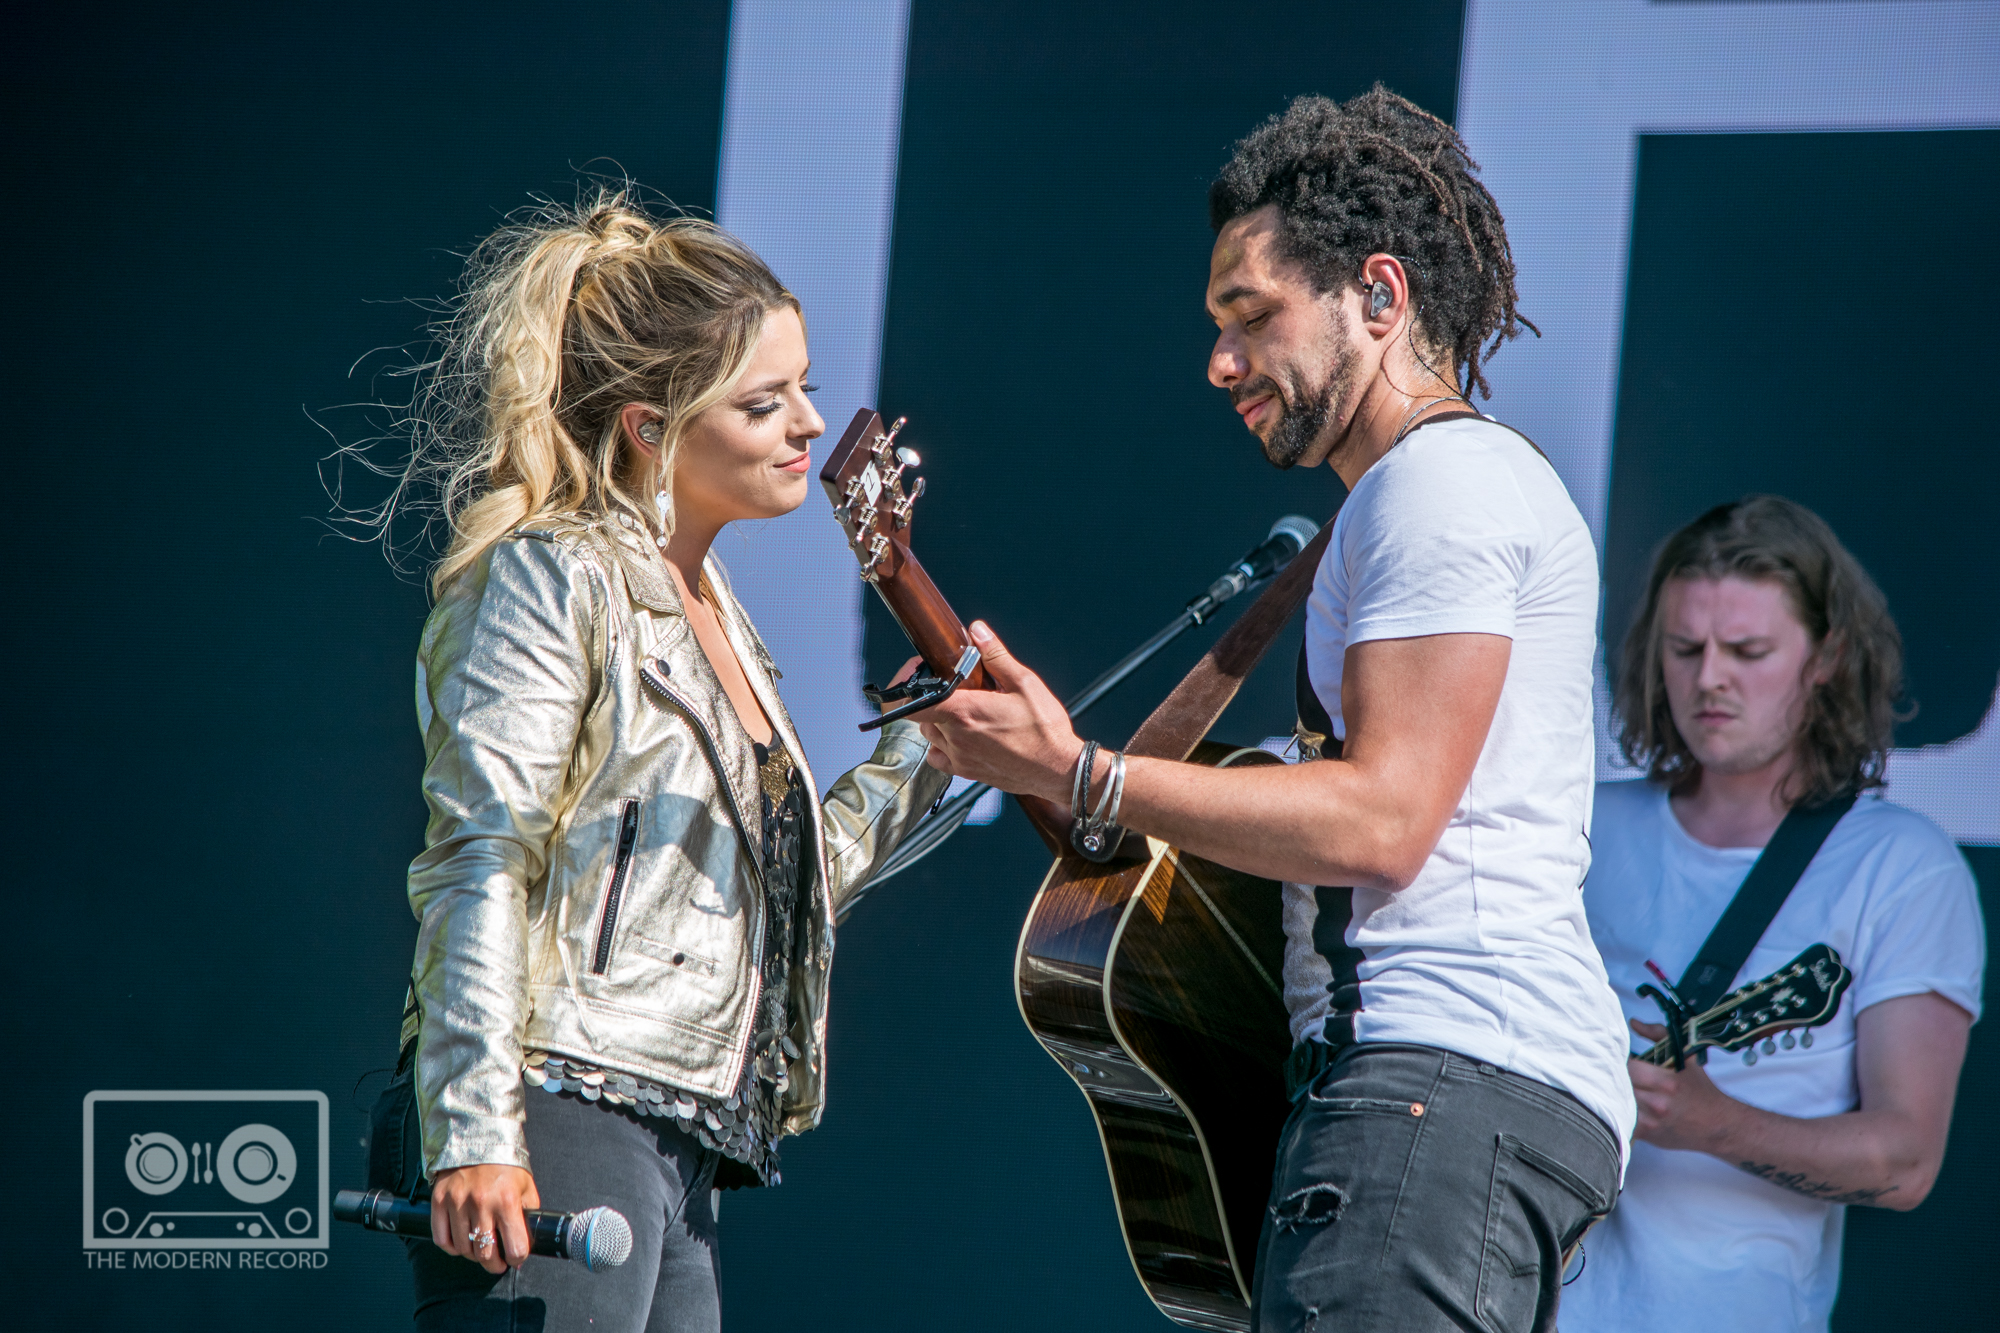 THE SHIRES PERFORMING AT BBC BIGGEST WEEKEND IN PERTH - 26.05.2018  PICTURE BY: STEPHEN WILSON PHOTOGRAPHY